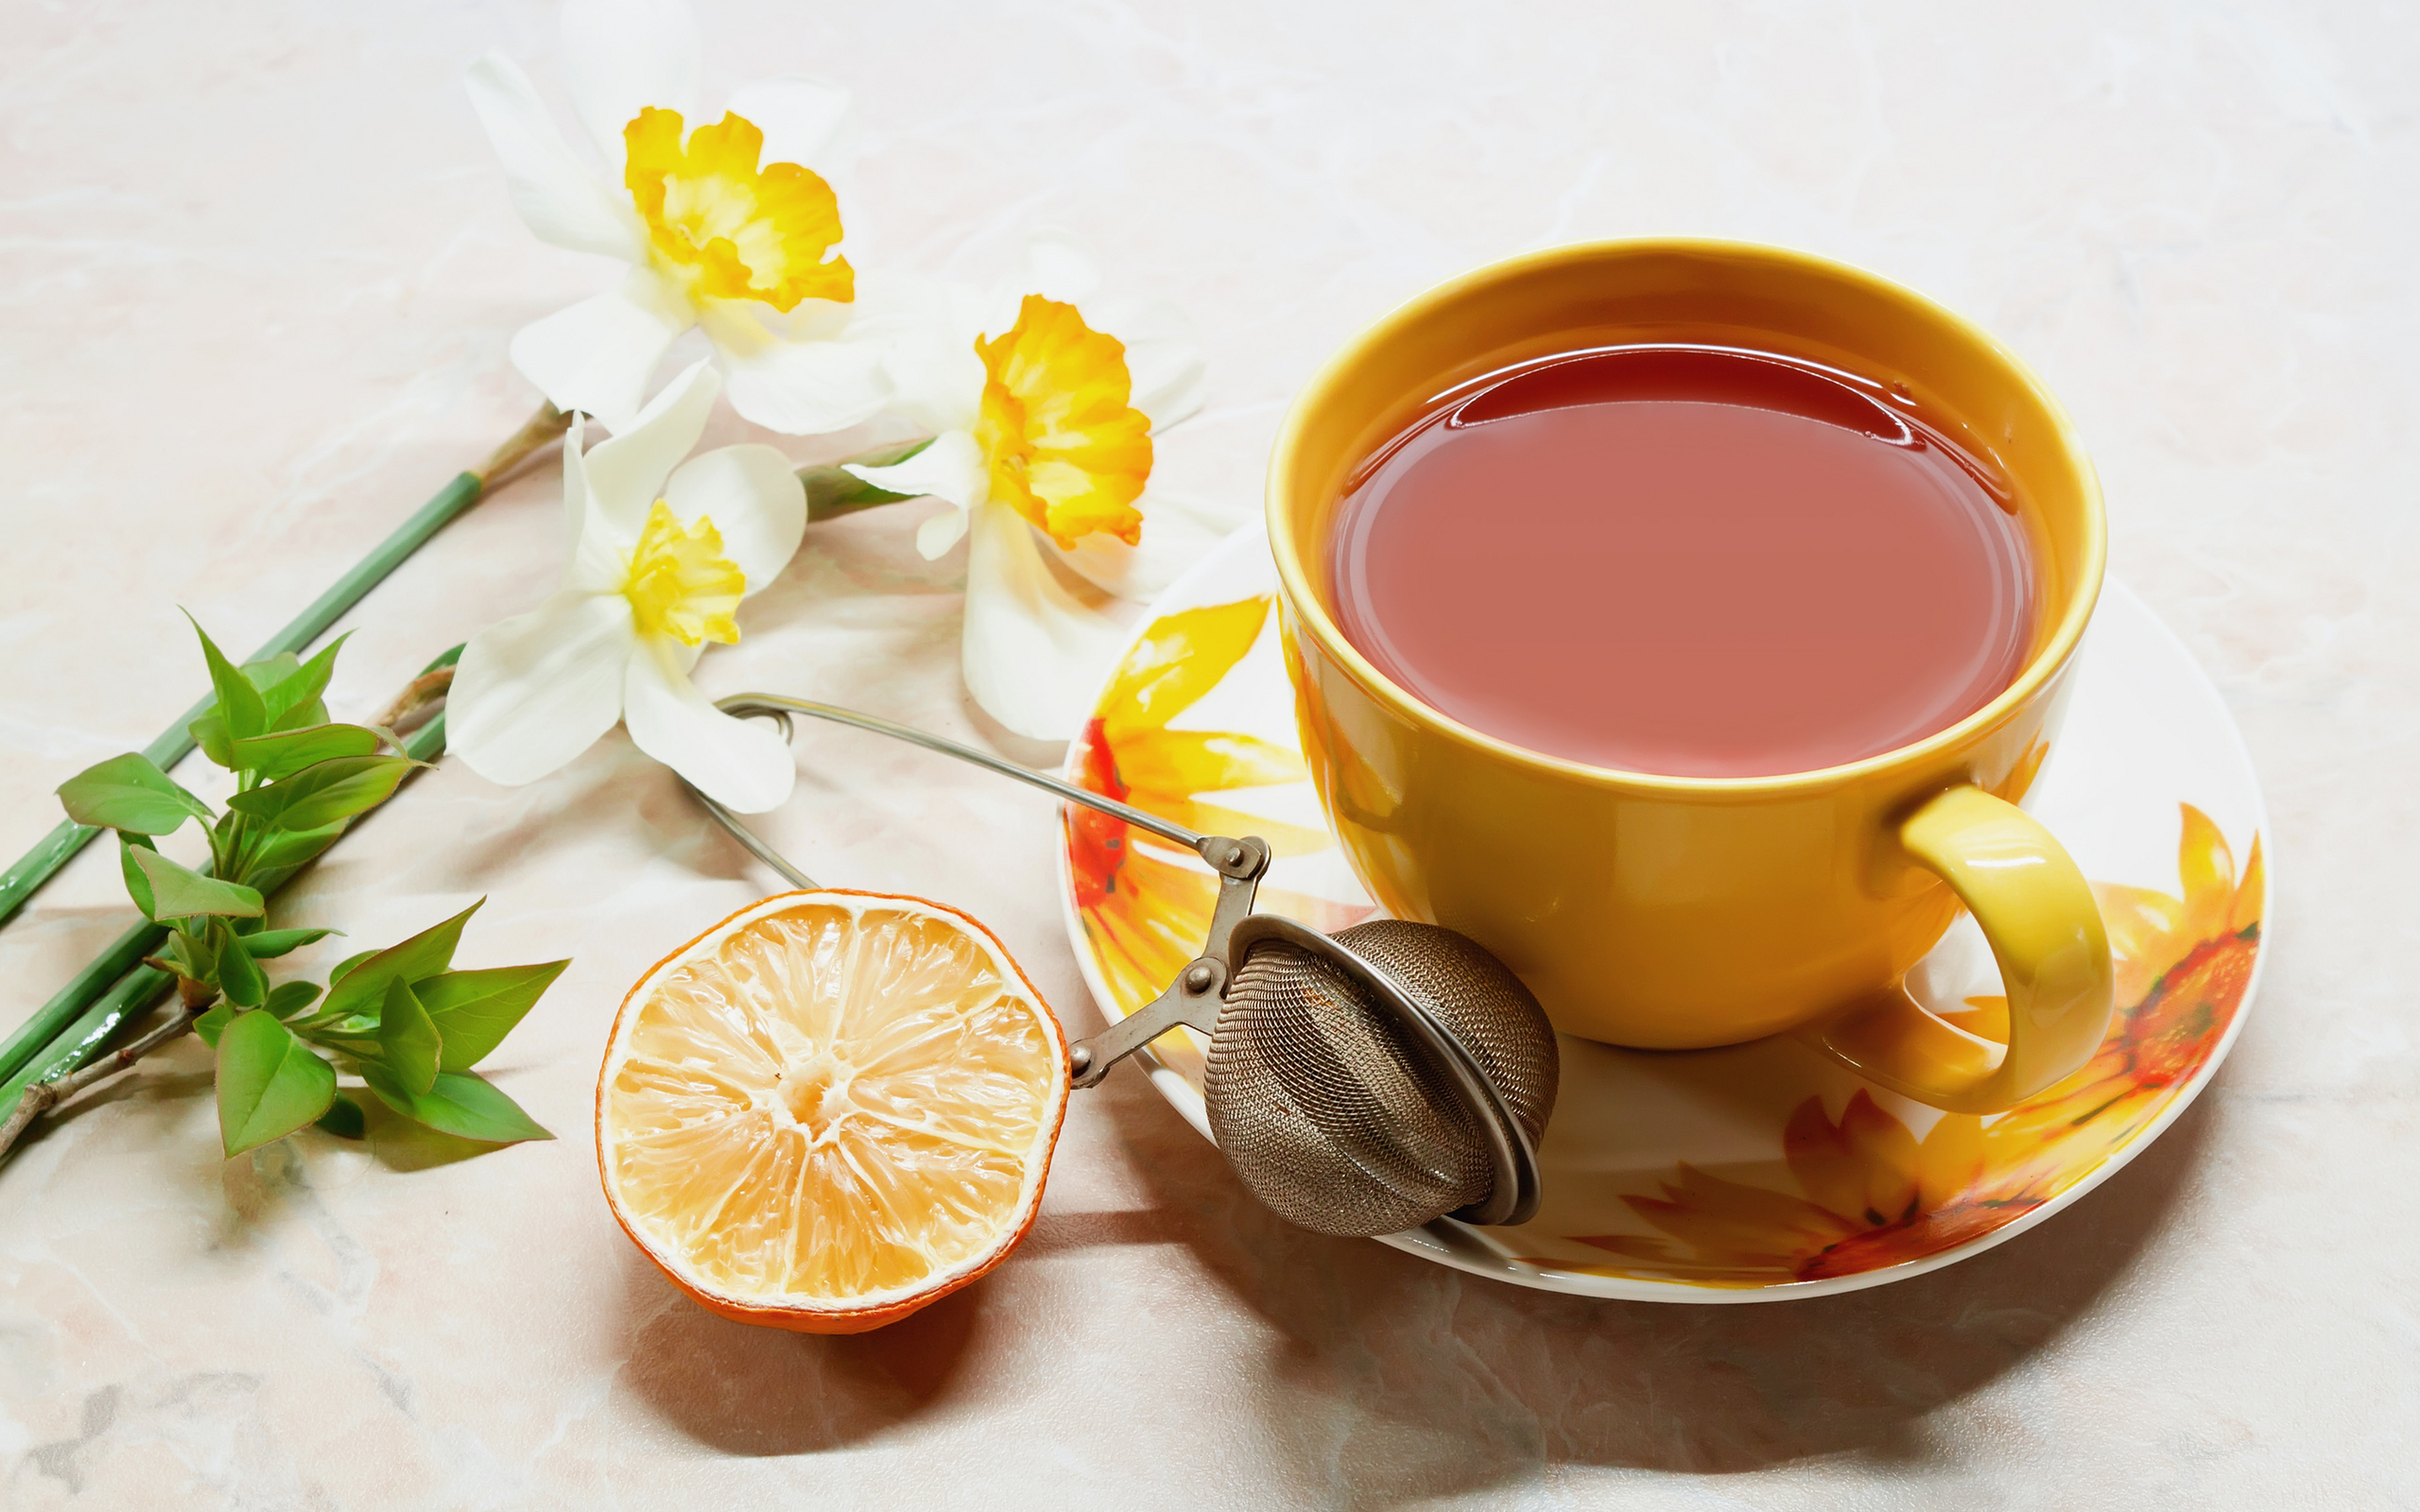 586 Tea Hd Wallpapers Background Images Wallpaper Abyss